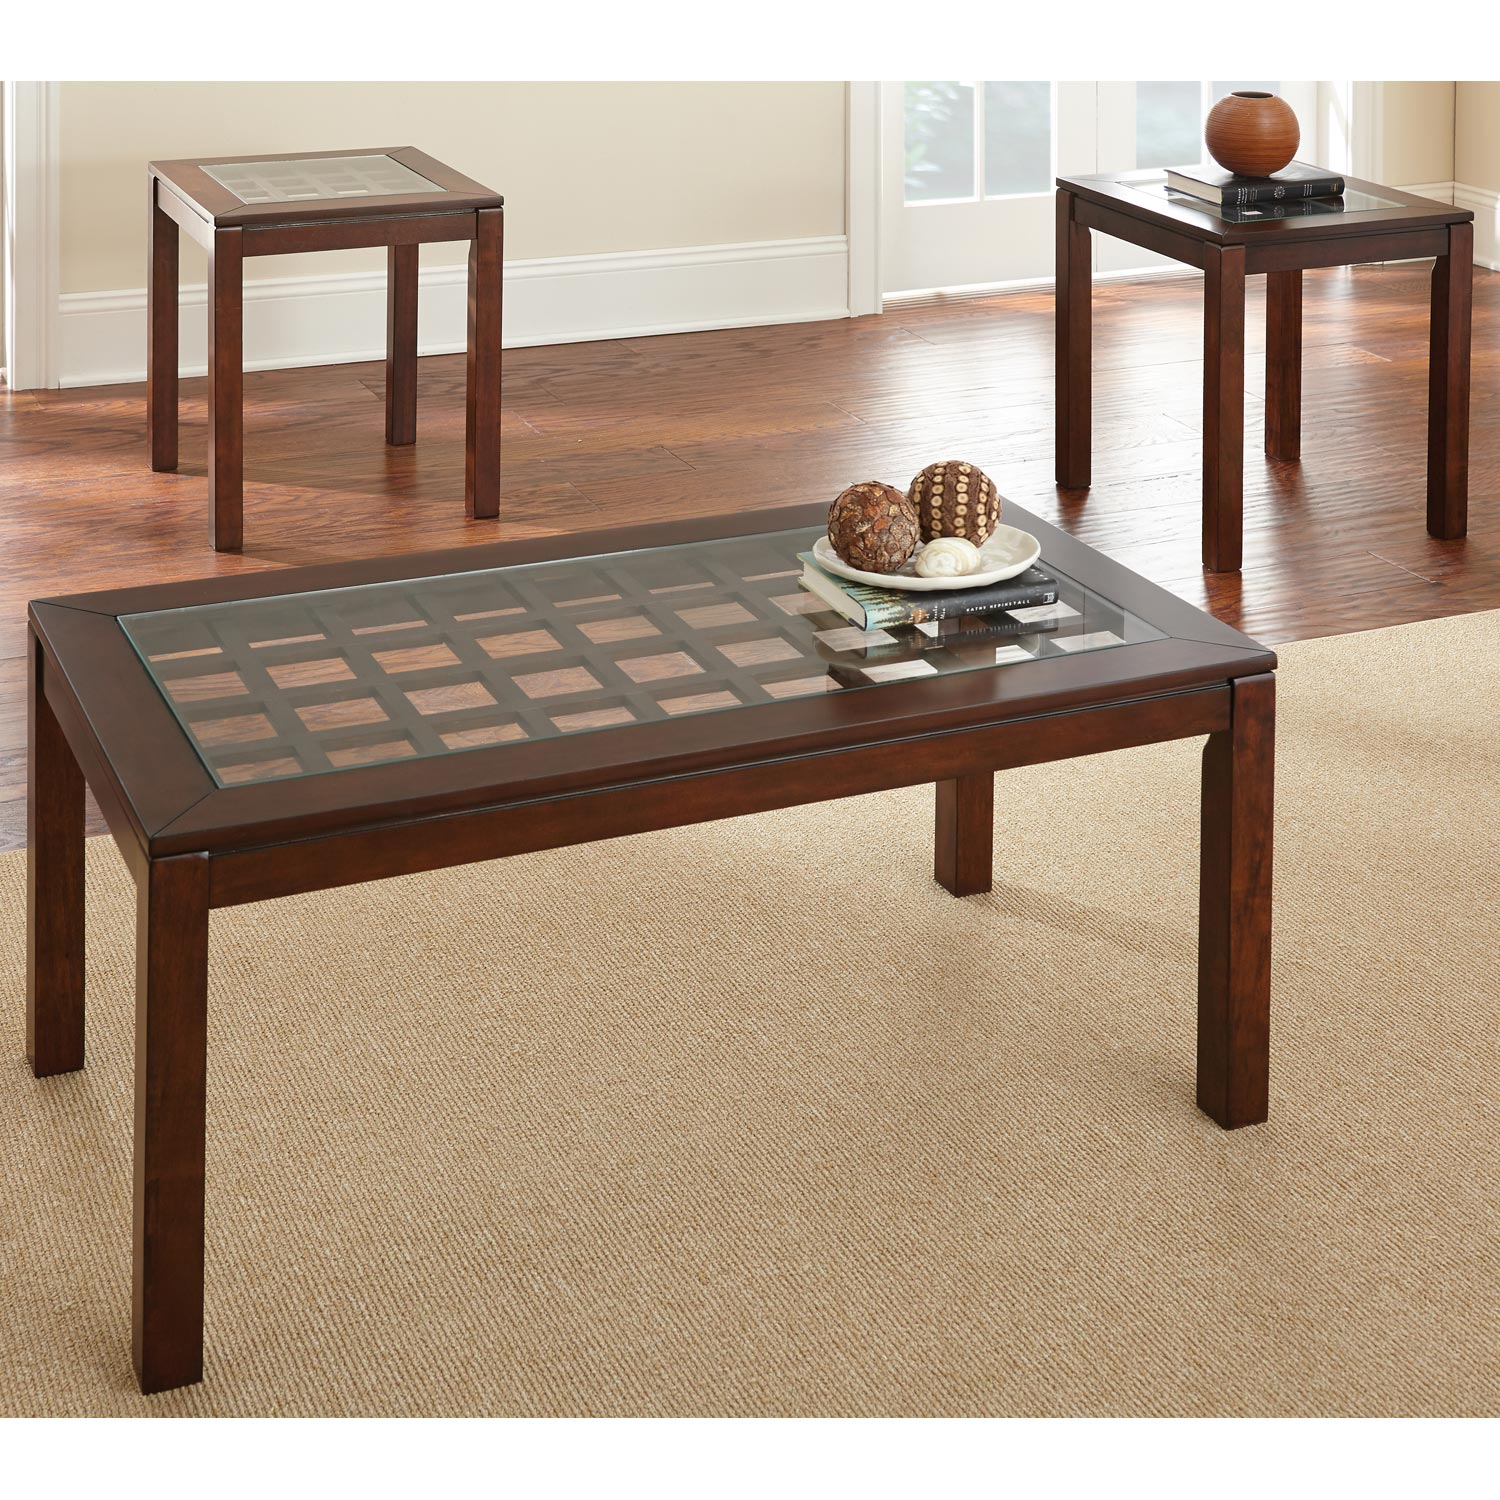 Dixon coffee table side tables set tempered glass for Side coffee table set